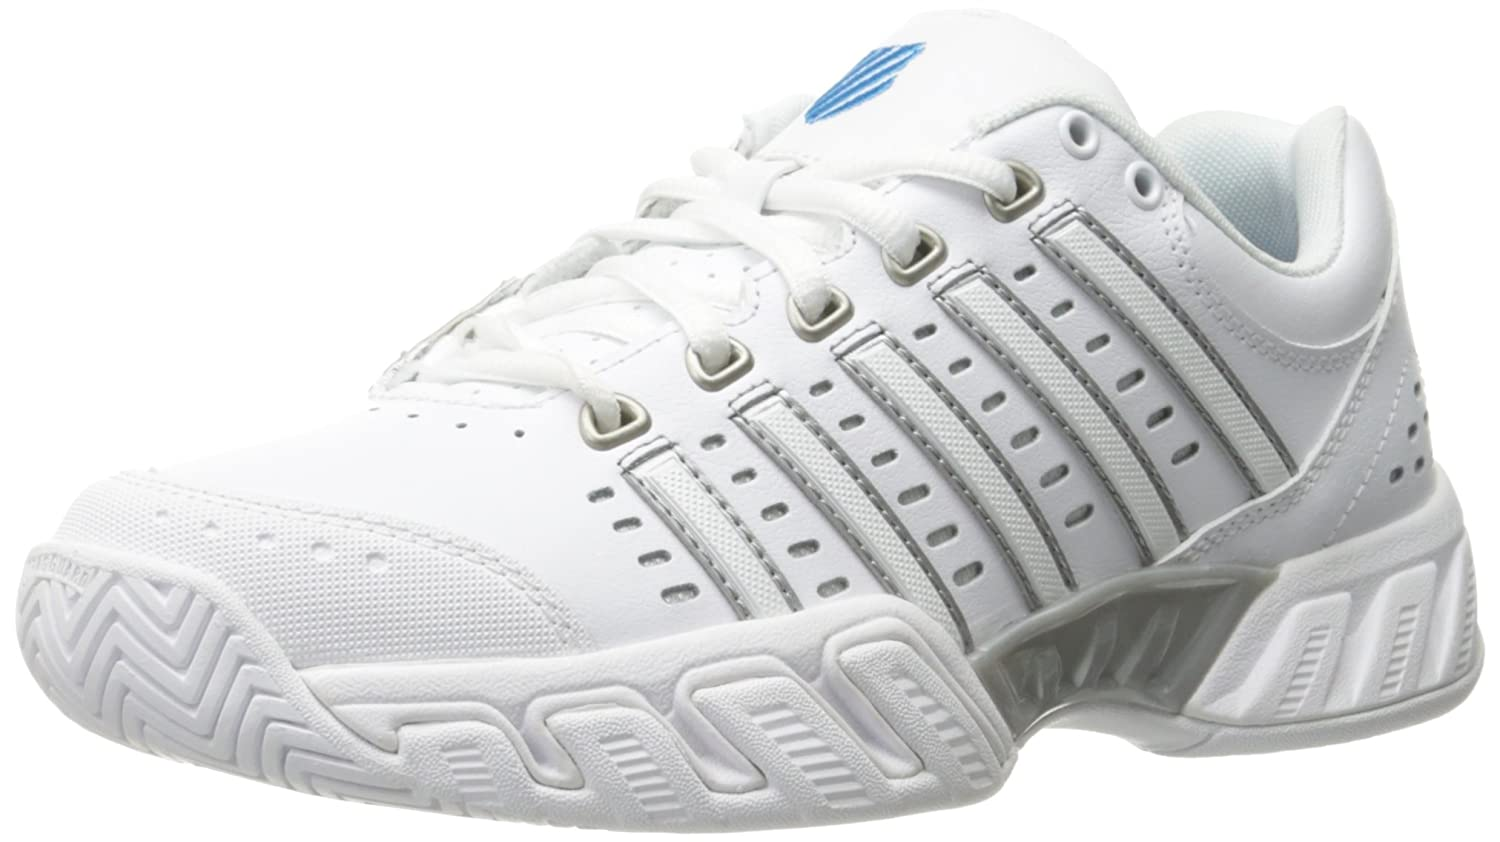 K-Swiss Women's Bigshot Light Tennis Shoe B01LS81NXA 7.5 B(M) US|White/Hawaiian Ocean